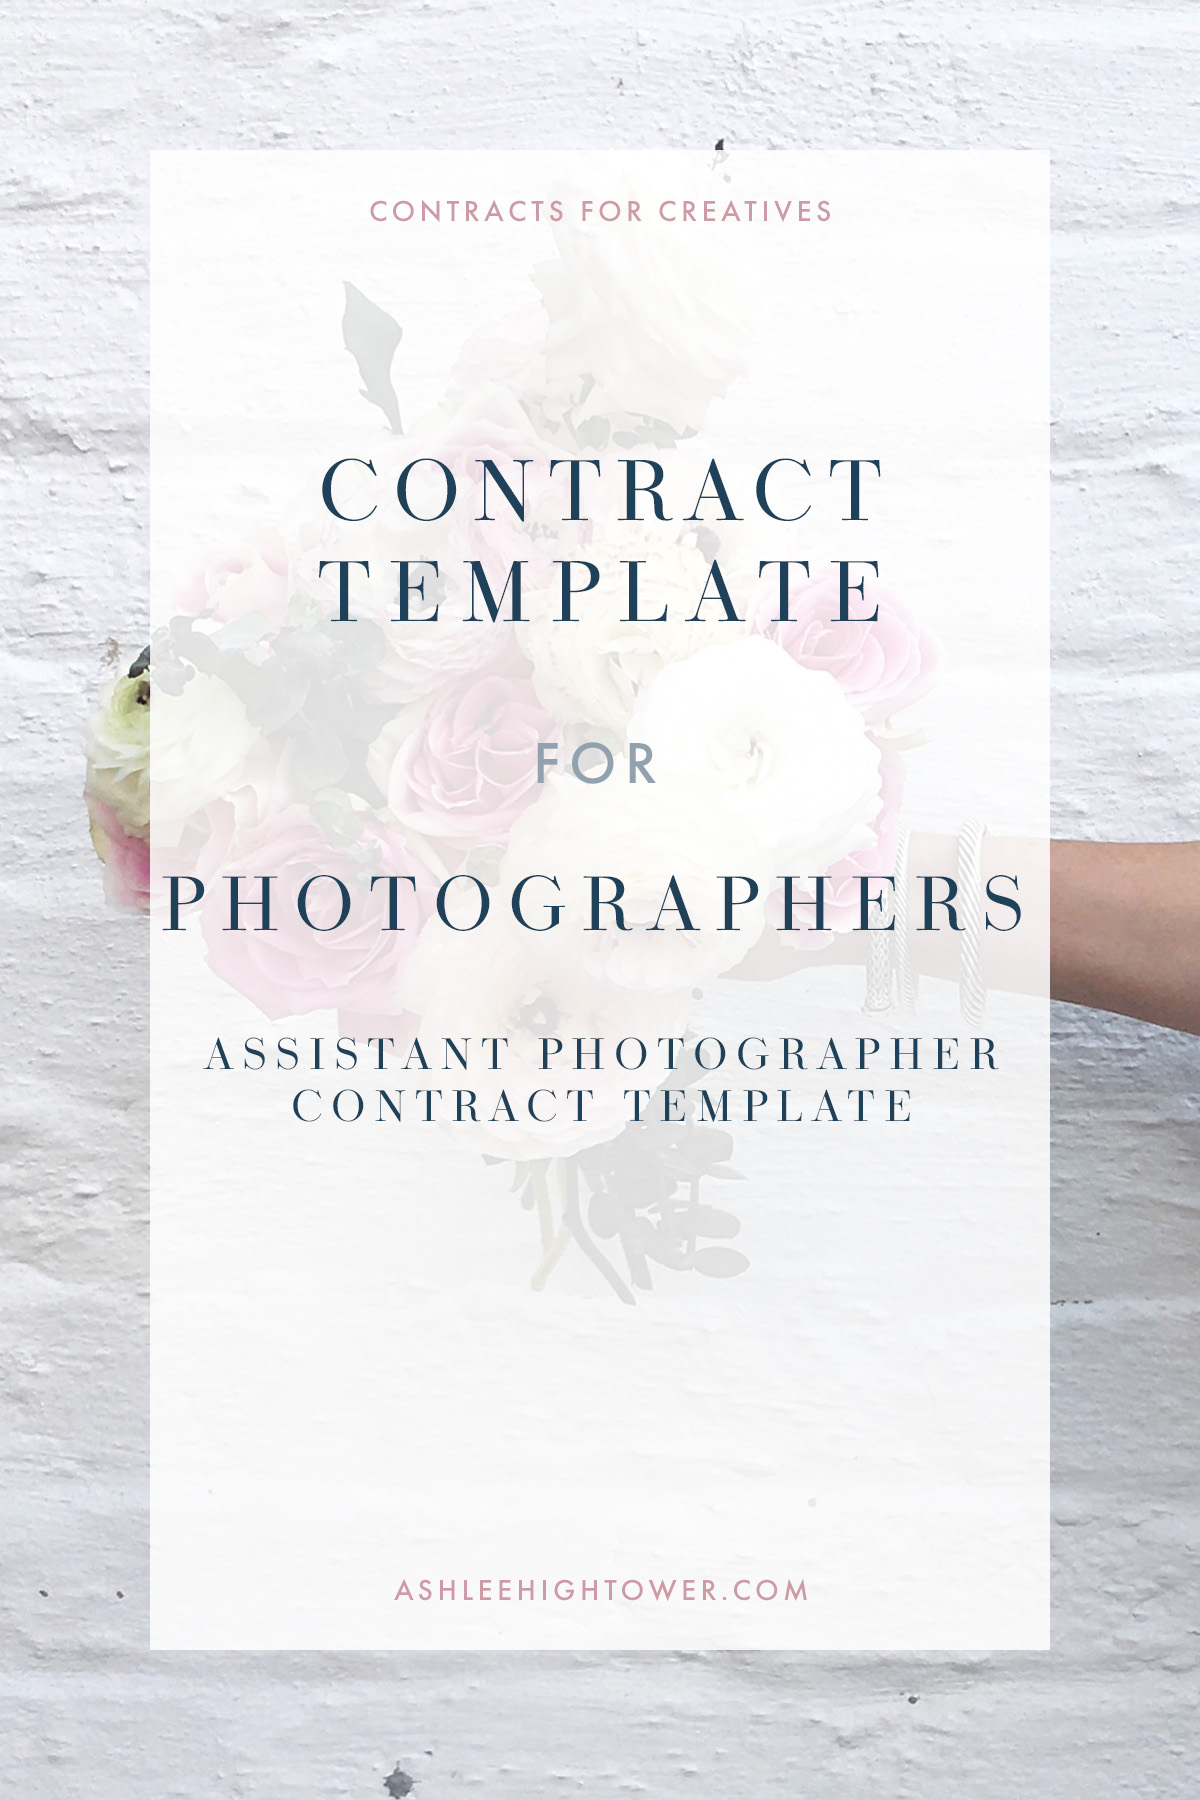 Contracts for Creatives   Assistant Photographer Contract Template   Photographer Contracts   Ashlee Hightower